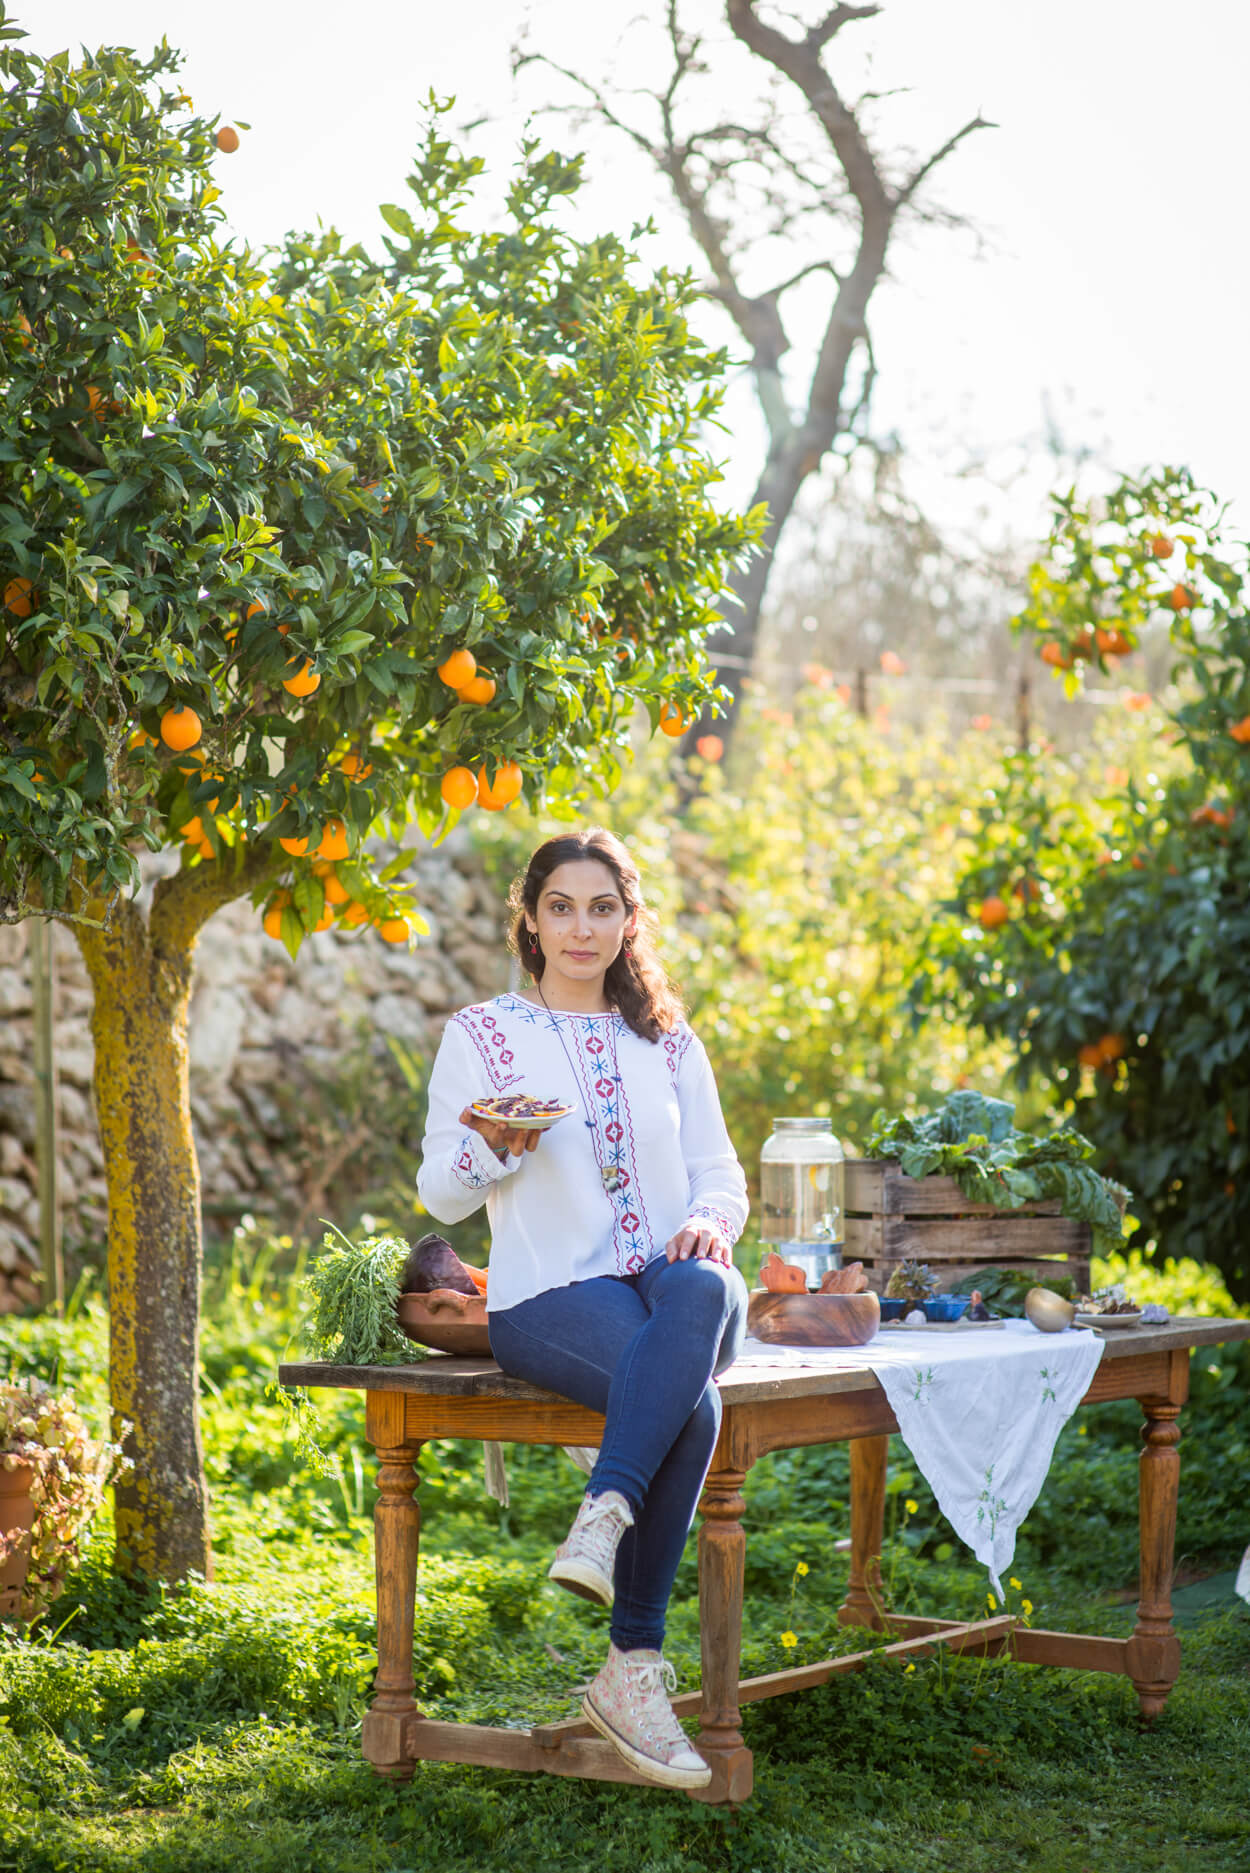 portrait plant base cook surrounded by orange trees